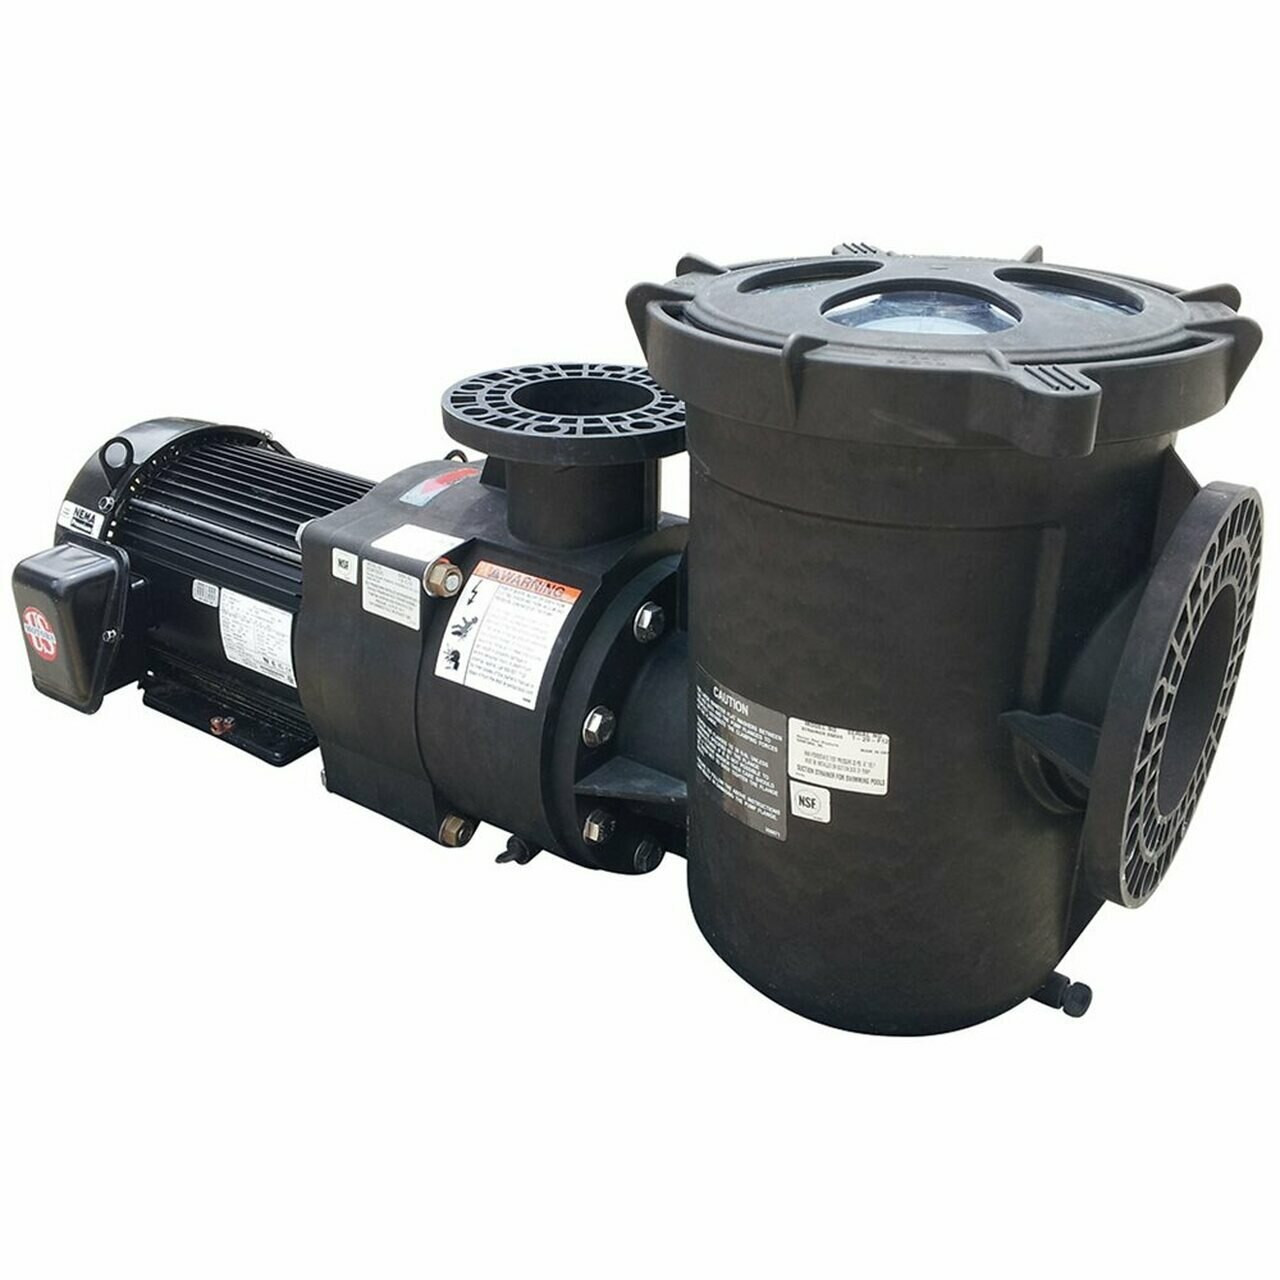 Pentair EQ Series 3-Phase Premium Efficient Commercial Pump with Strainer; 7.5 HP, 208-230/460 V, 20.1 - 18.3/9.1 A